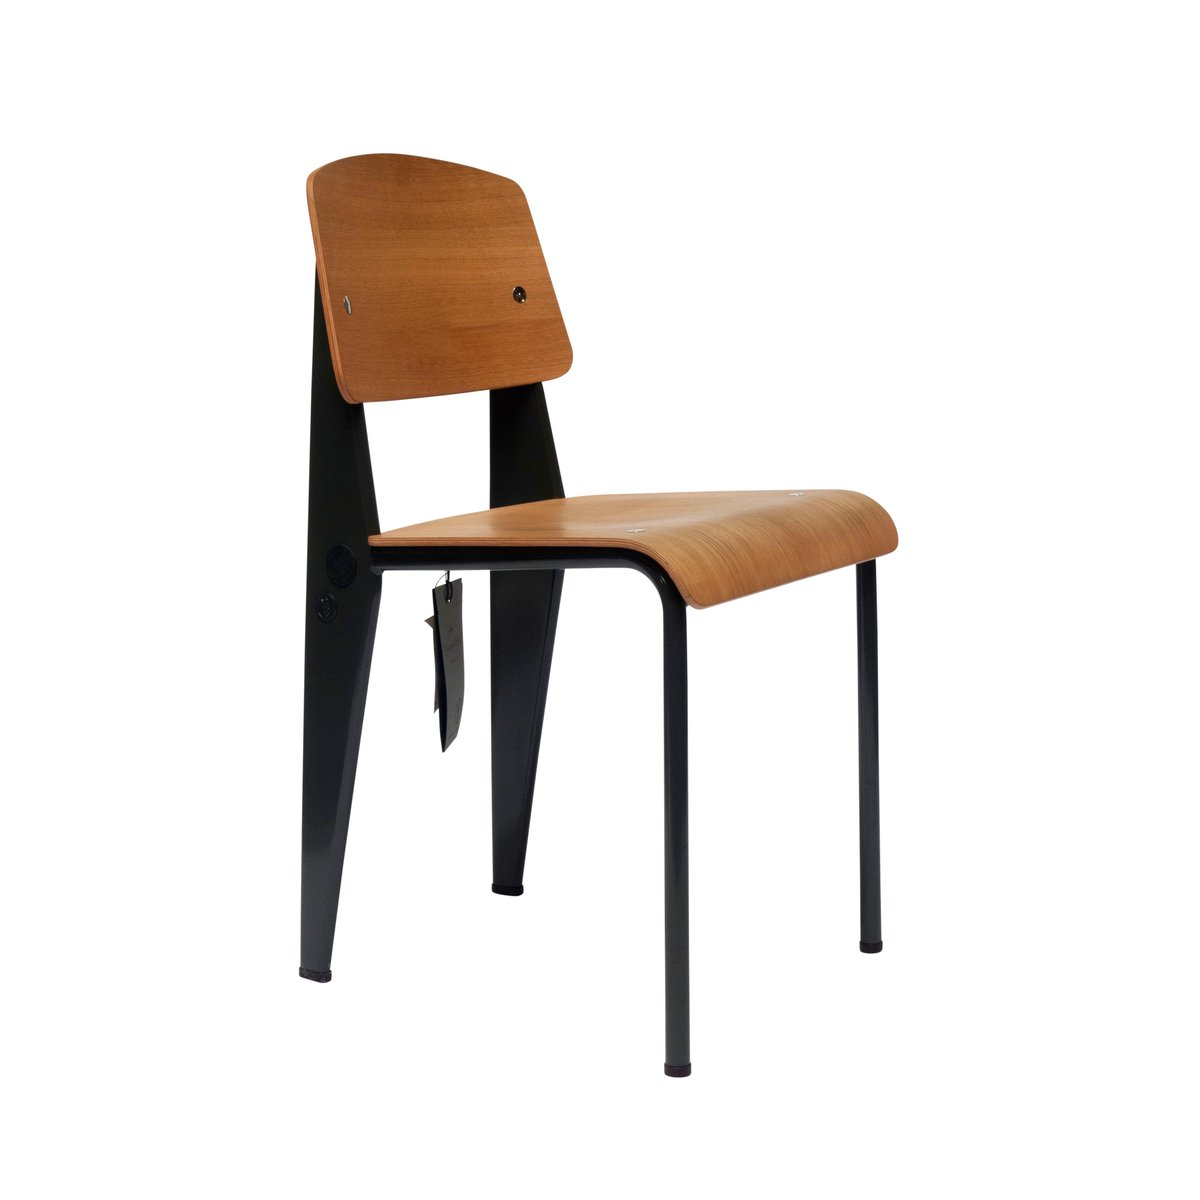 g star raw standard chair by jean prouv for vitra 2011 set of 6 for sale at pamono. Black Bedroom Furniture Sets. Home Design Ideas